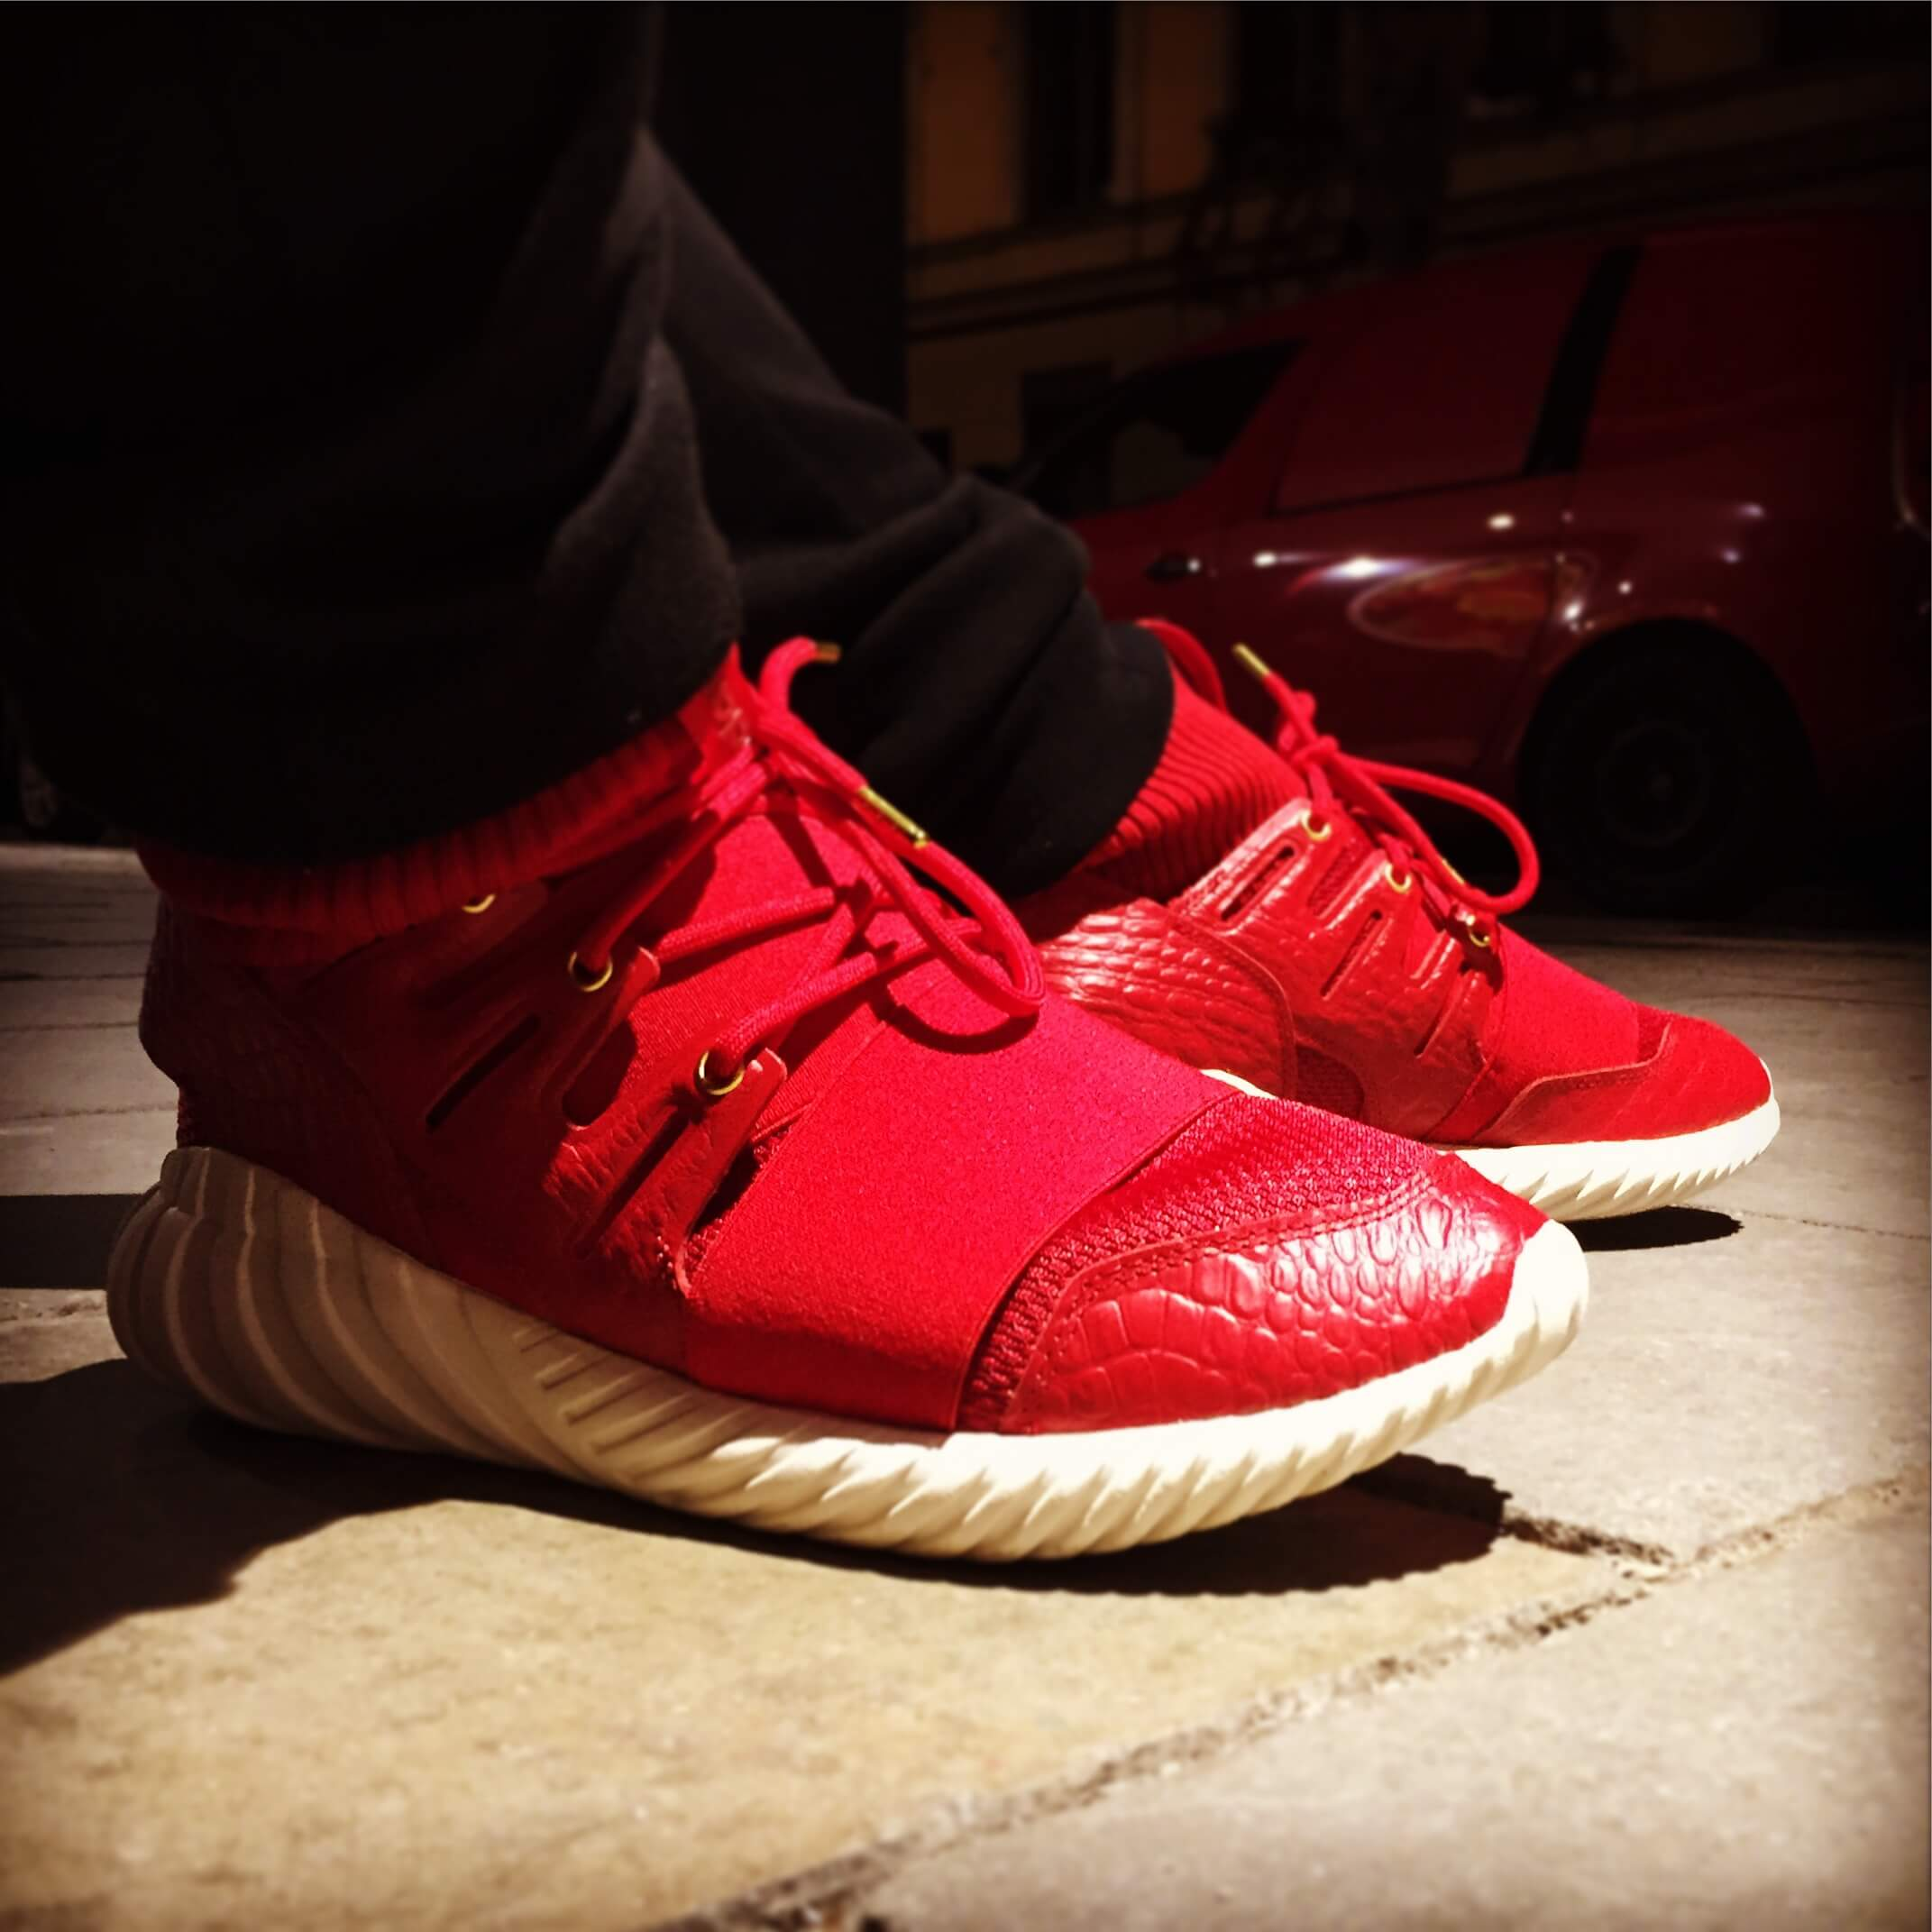 Adidas-Tubular-Doom-Chinese-New-Year-Side-View-Benstah-Onfeet